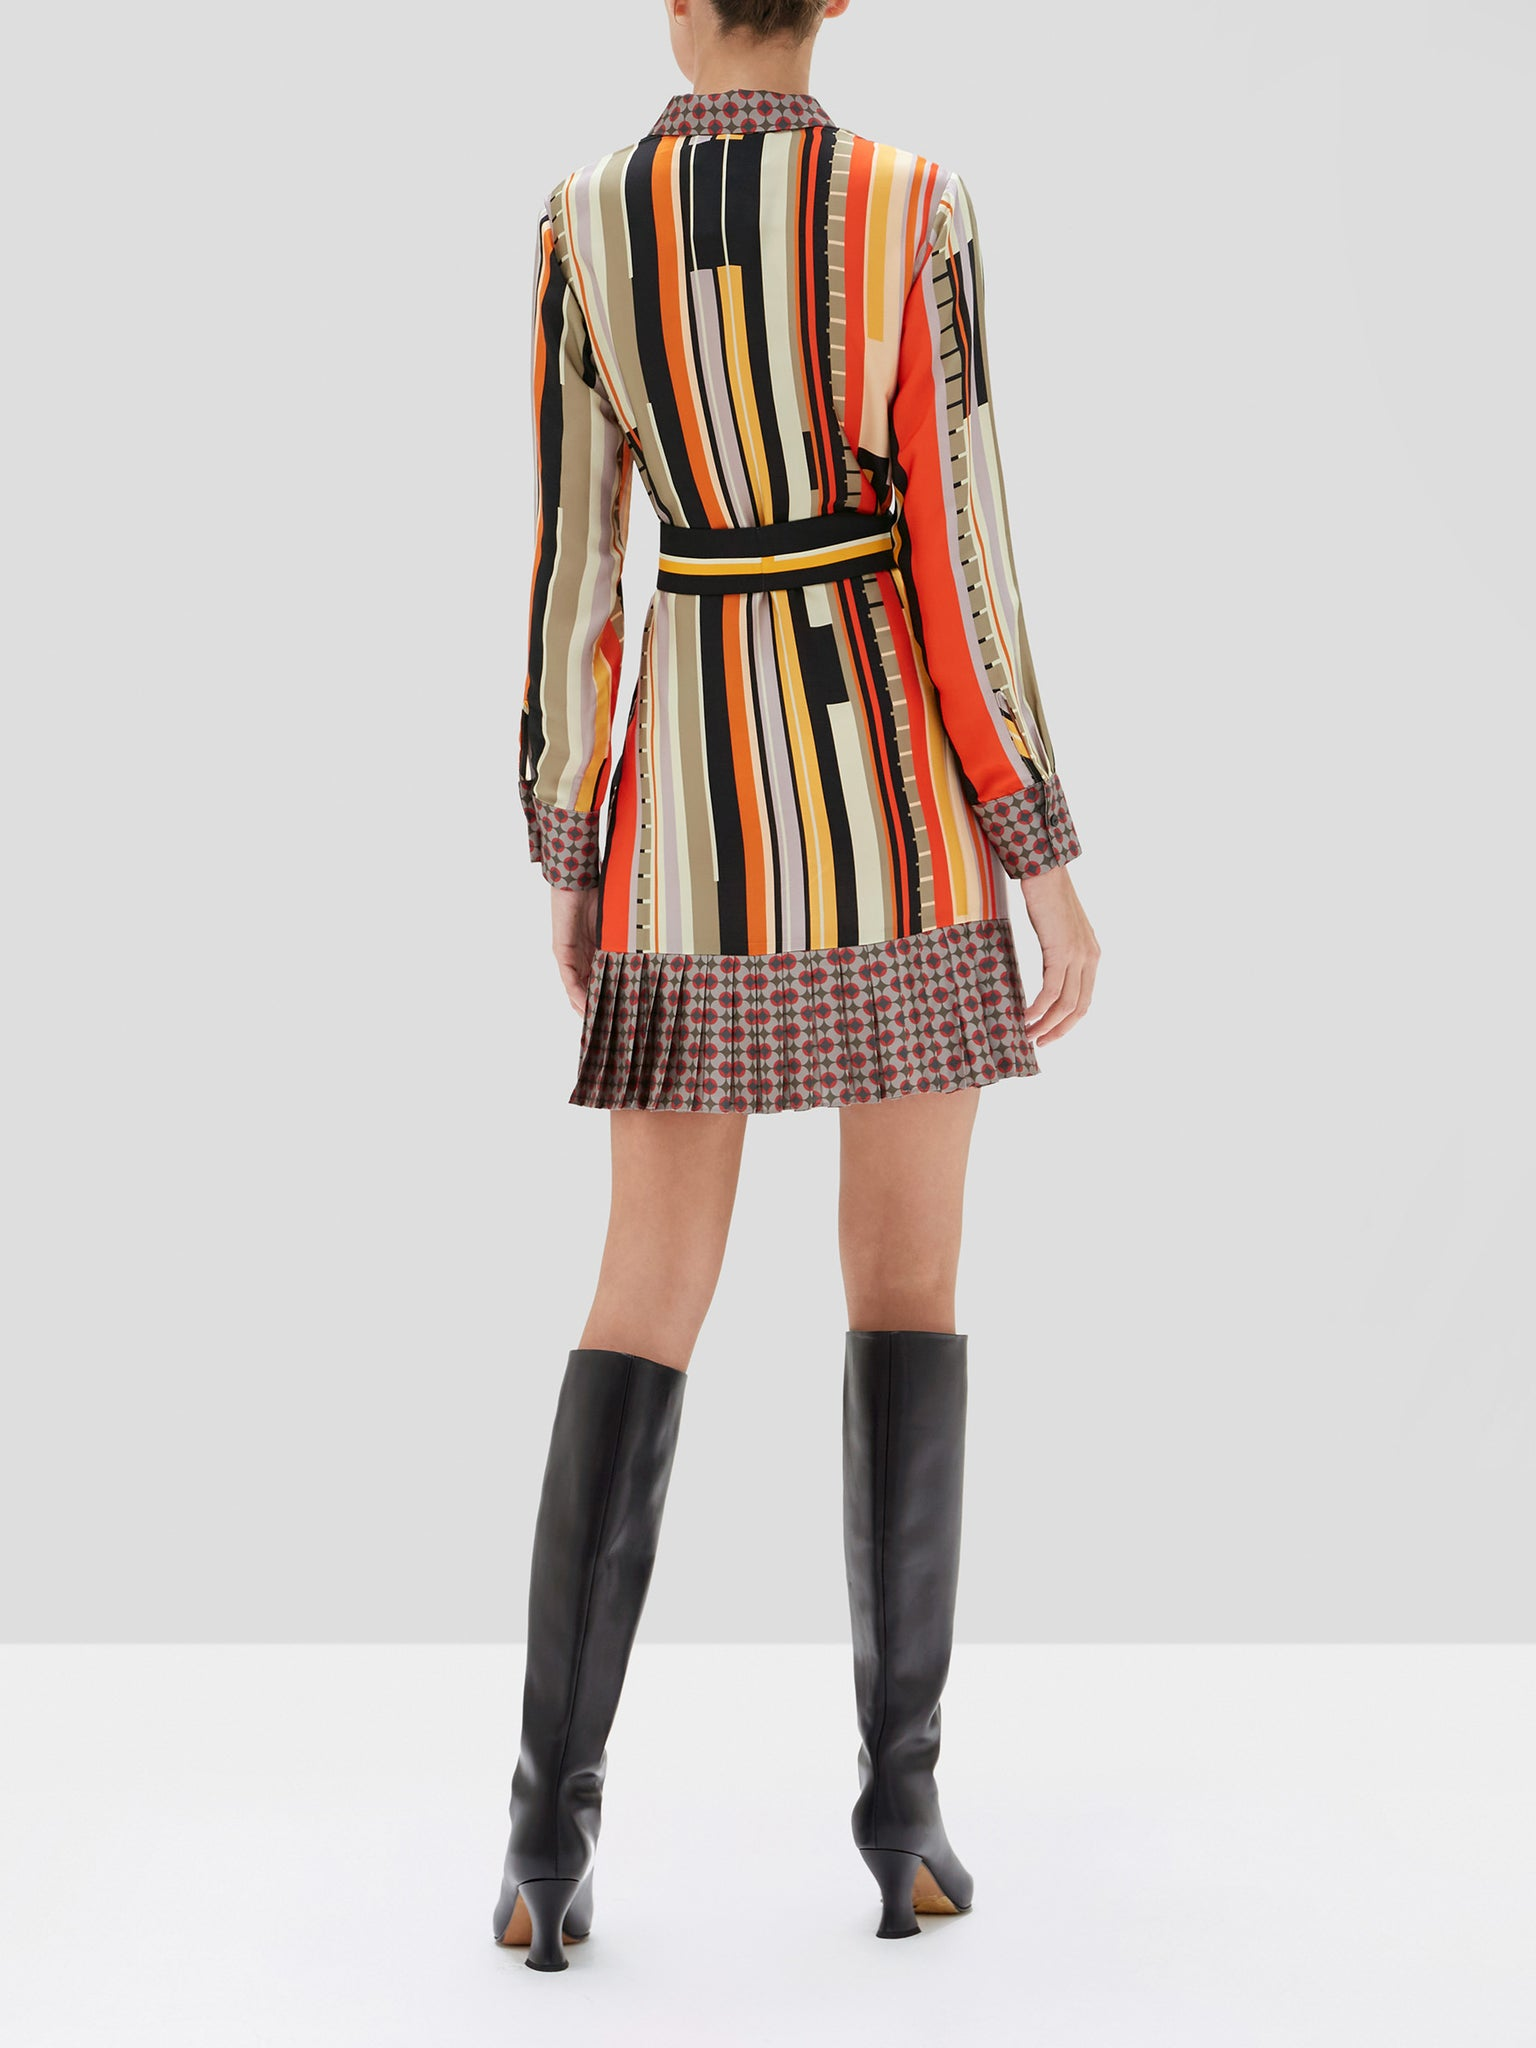 Payton dress in stripe foulard - Rear View